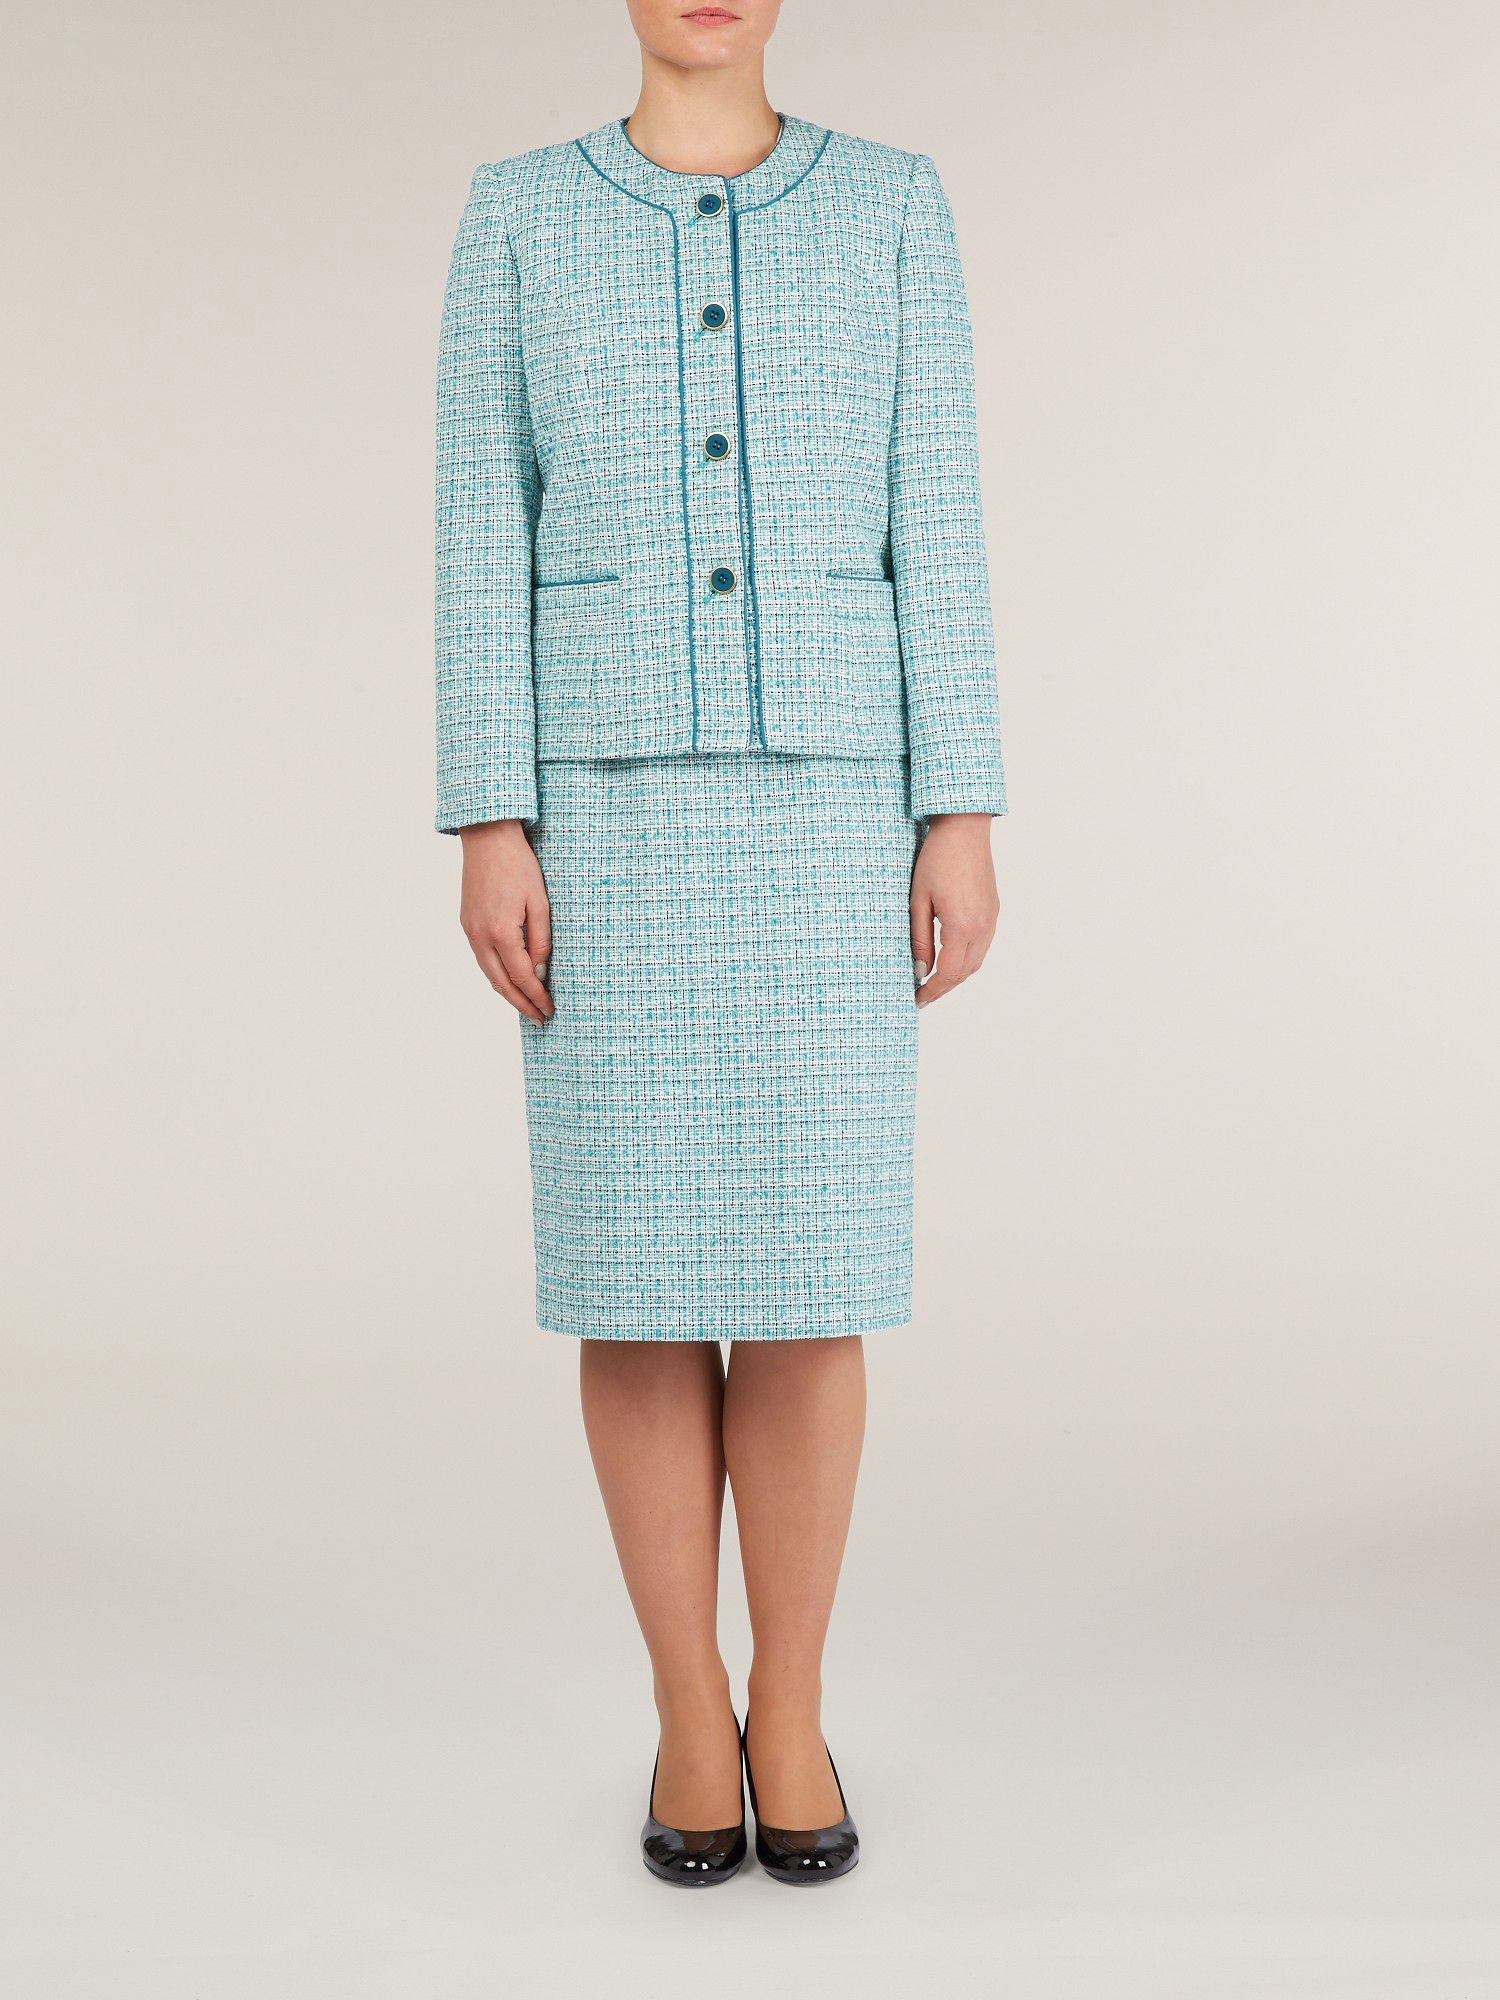 Turquoise Tweed Jacket